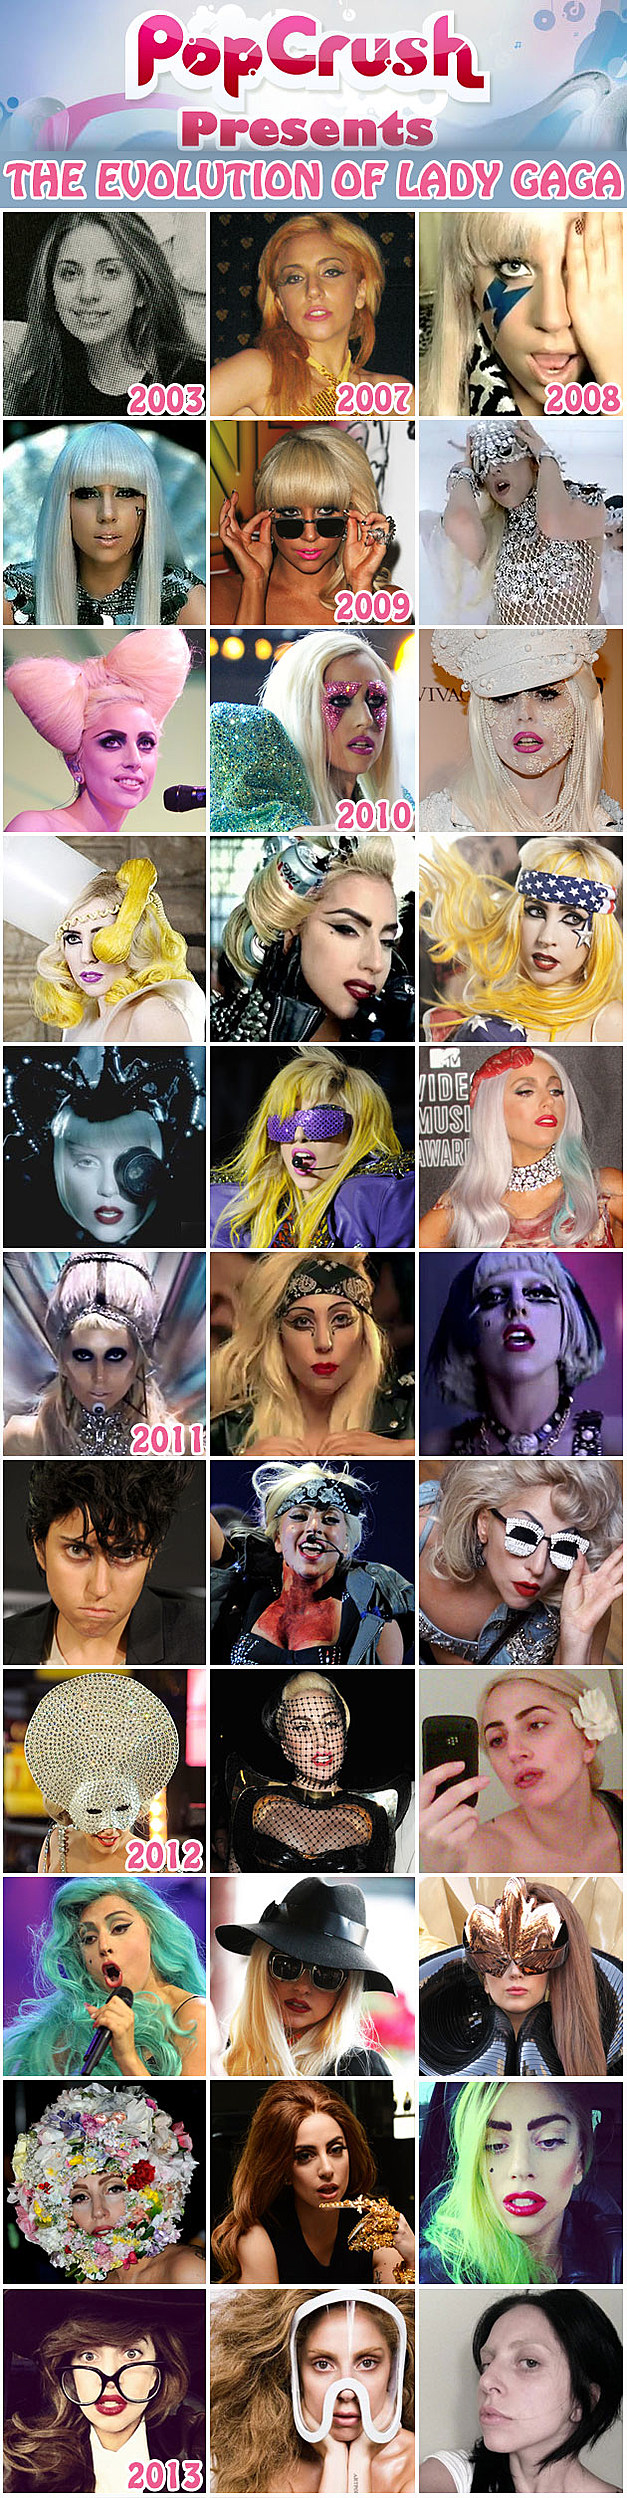 Lady Gaga Evolution